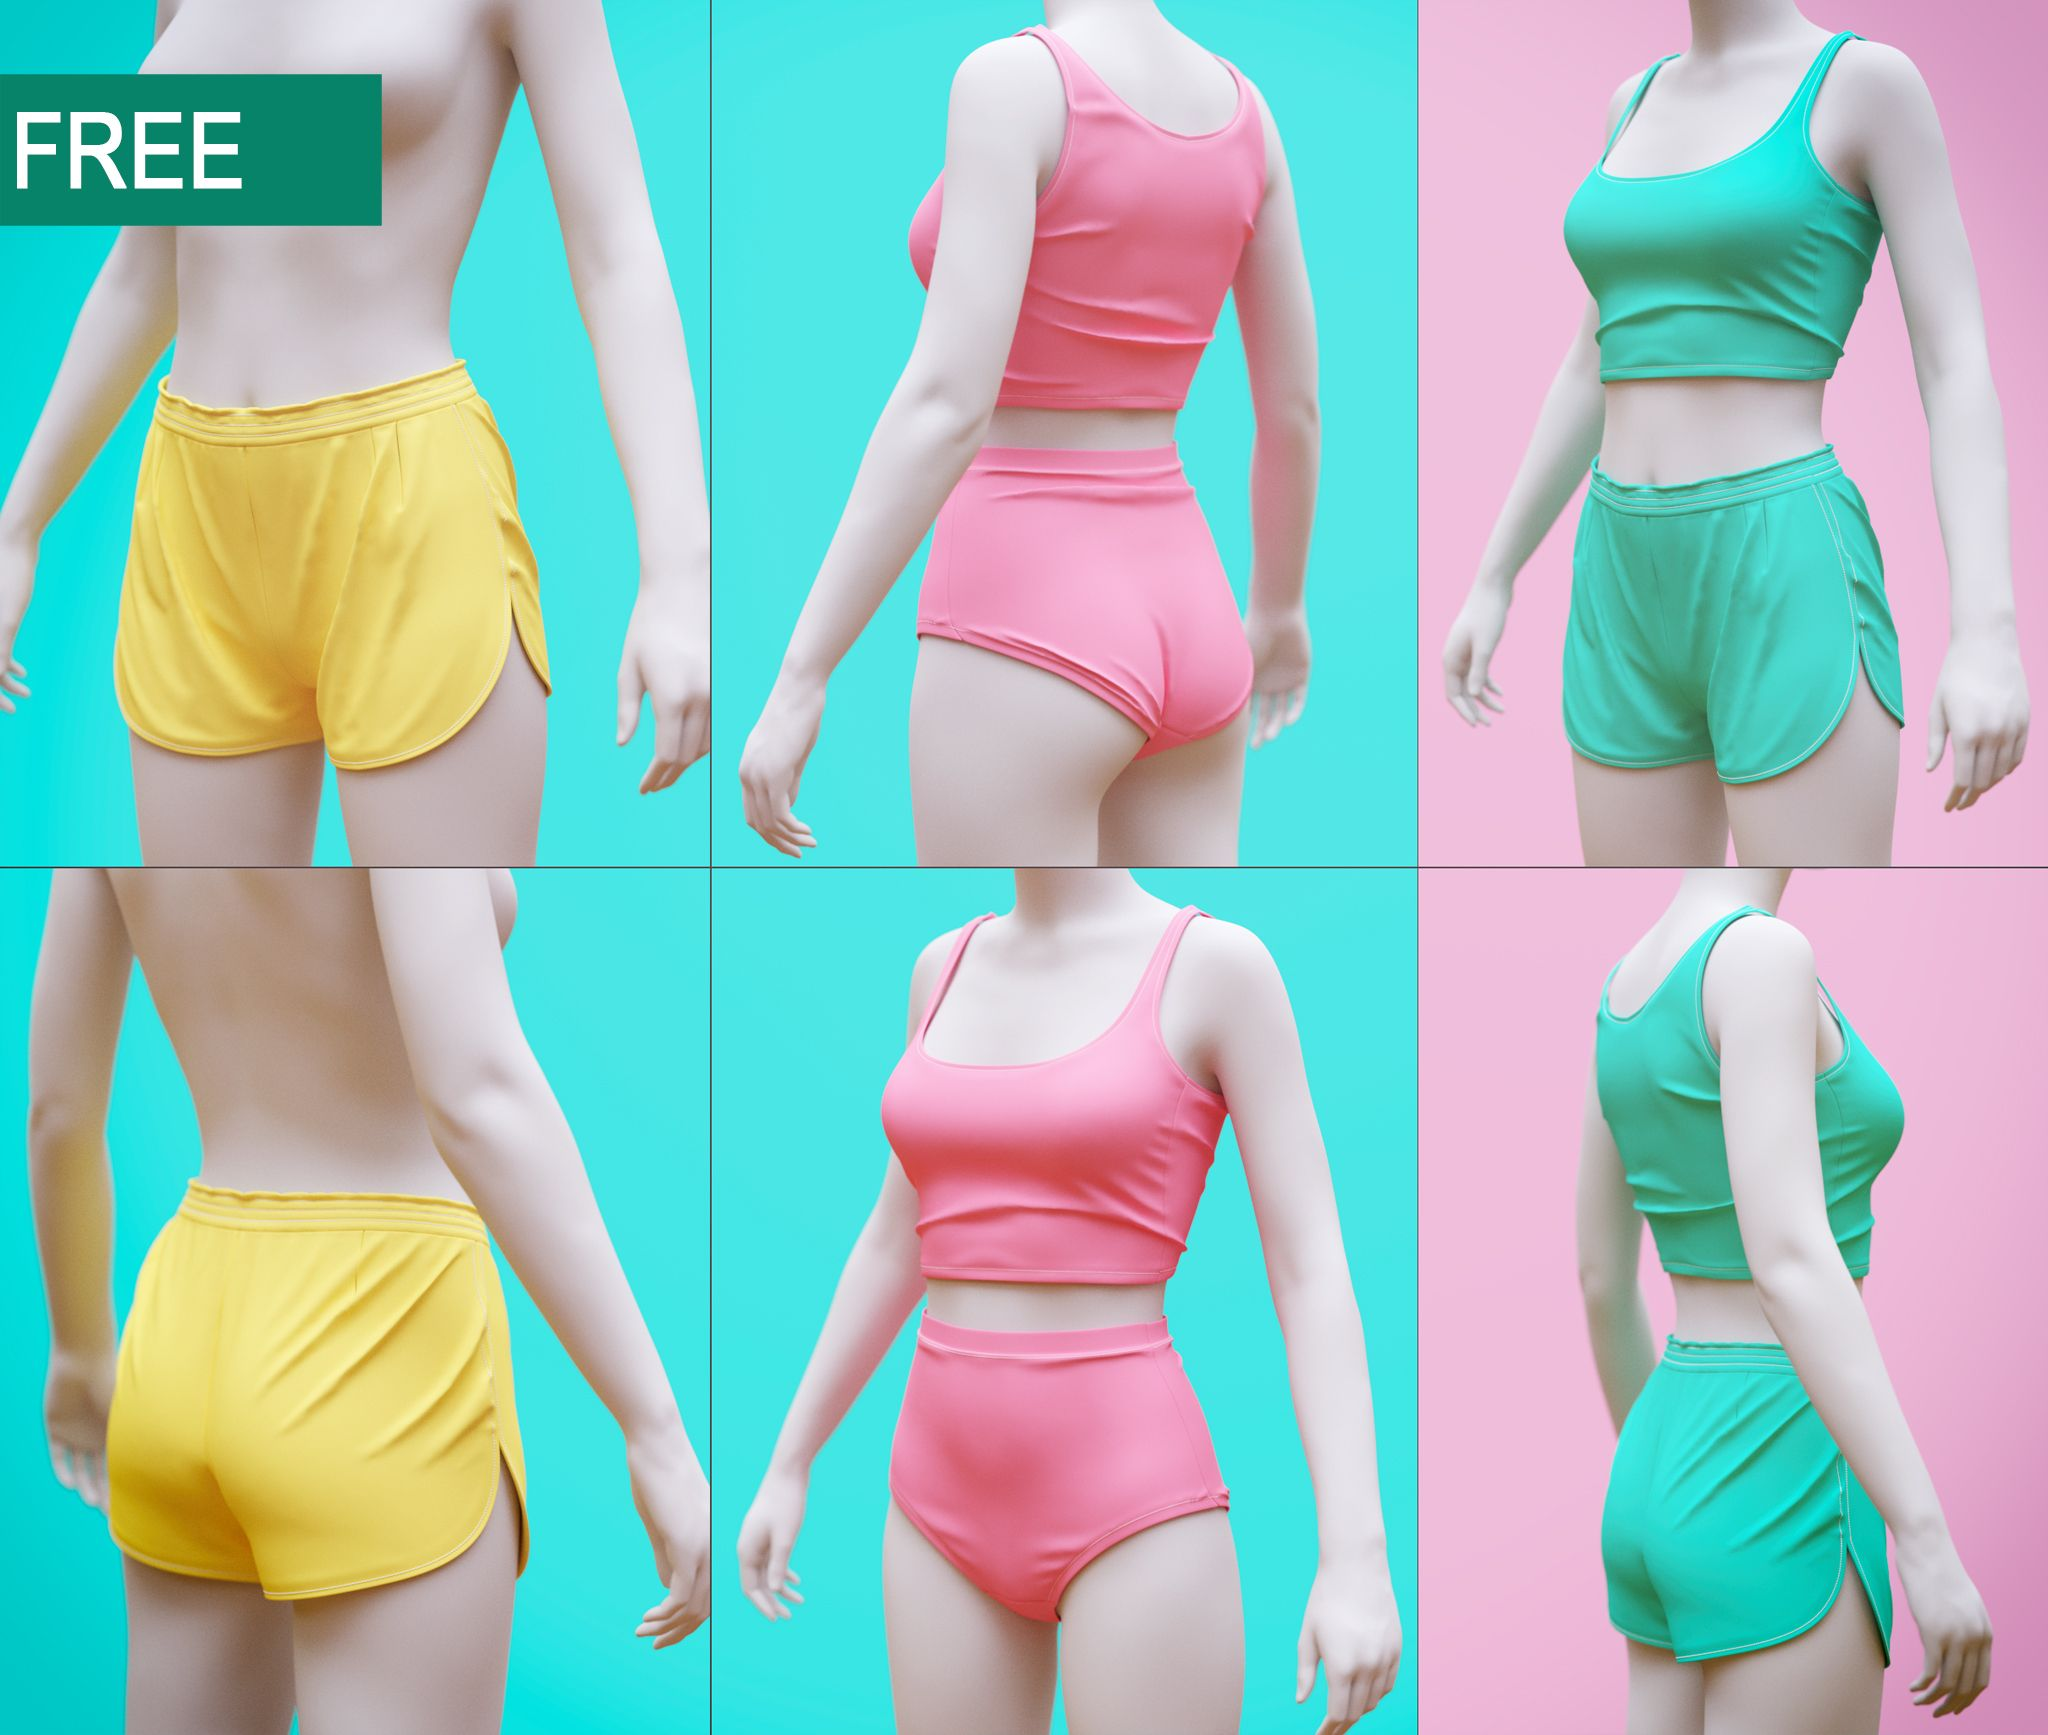 Women\'s Shorts and Undergarment | CG WIPs | Pinterest | Characters